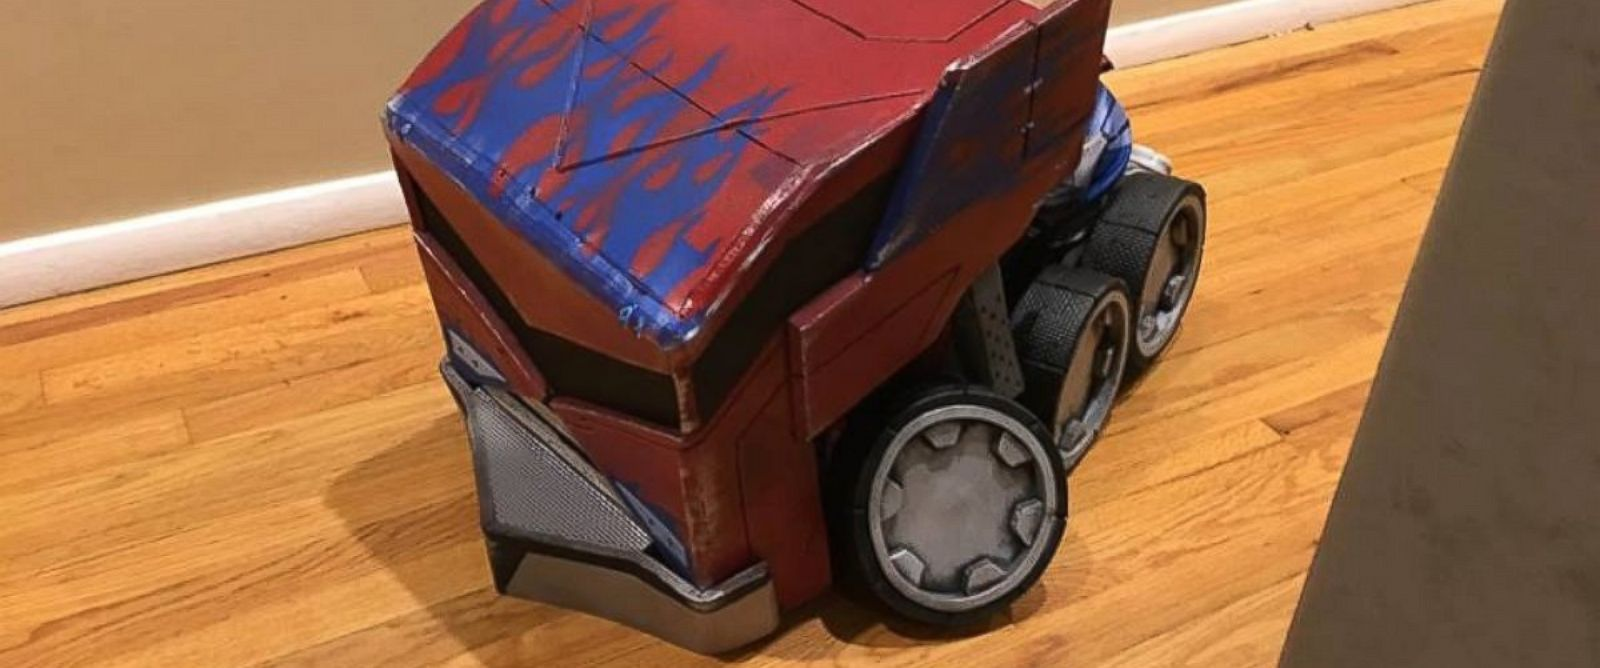 how to build a transforming optimus prime costume